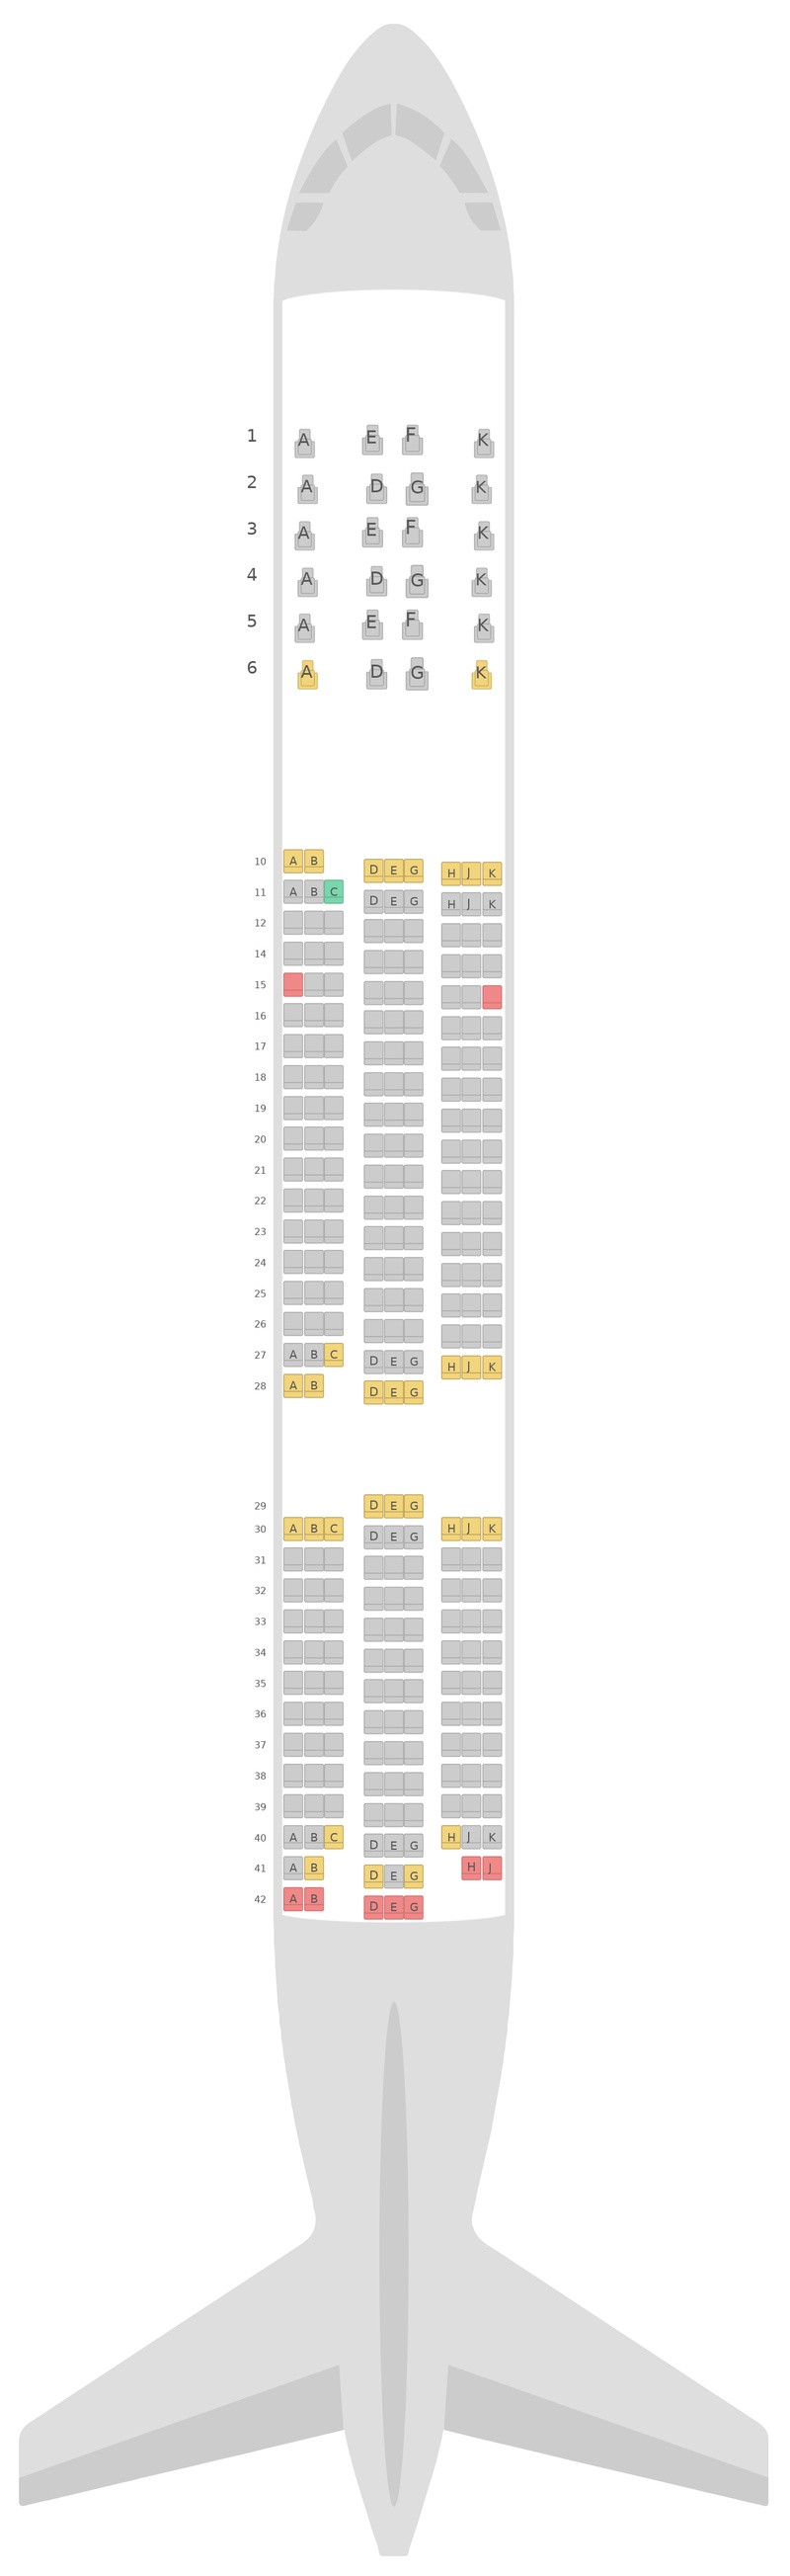 Seat Map Asiana Airlines Boeing 777-200ER v2